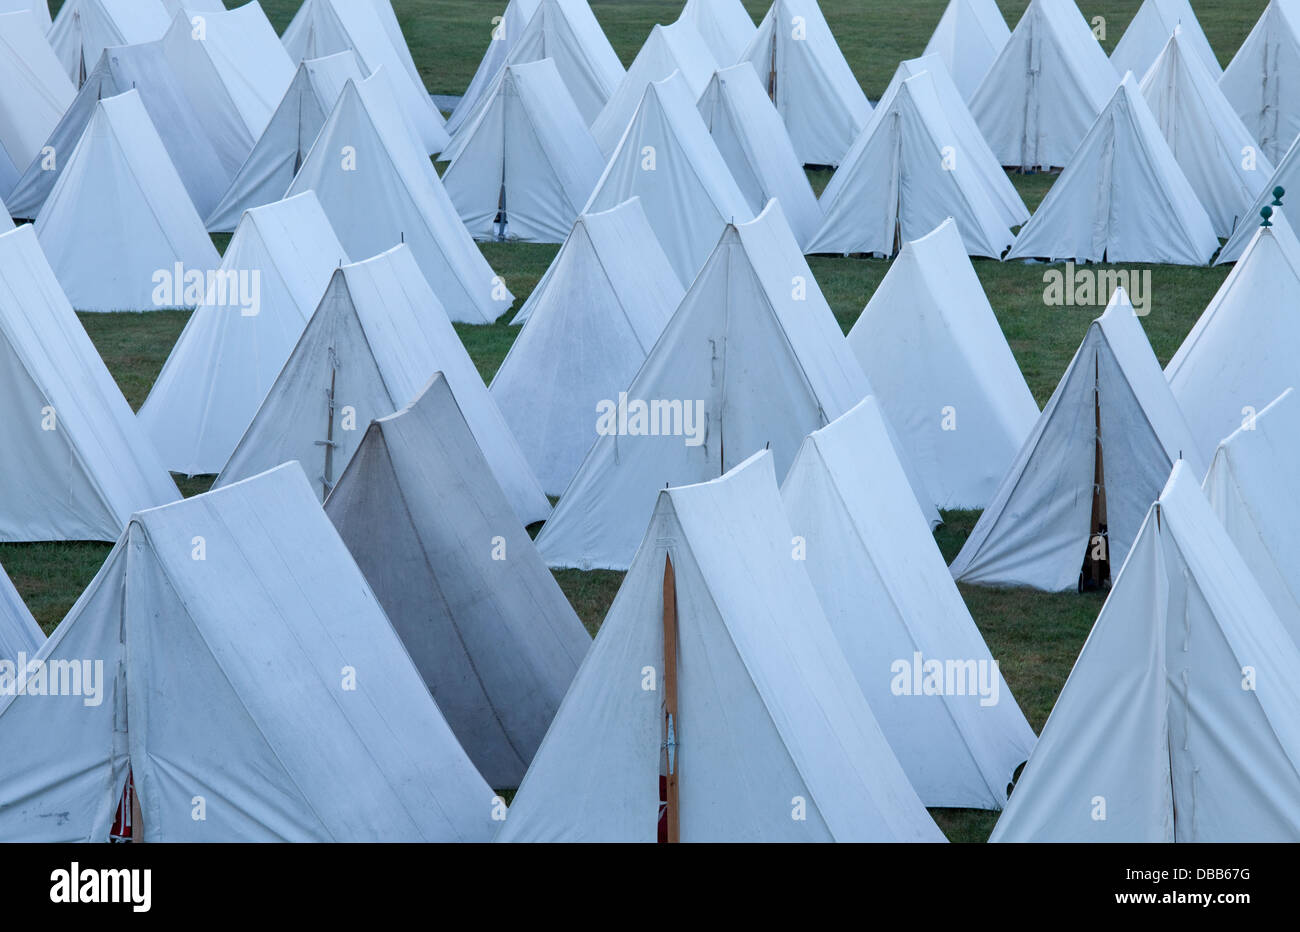 Canada,Ontario,Niagara-on-the-Lake,Fort George National Historic Park,rows of white canvas tents - Stock Image